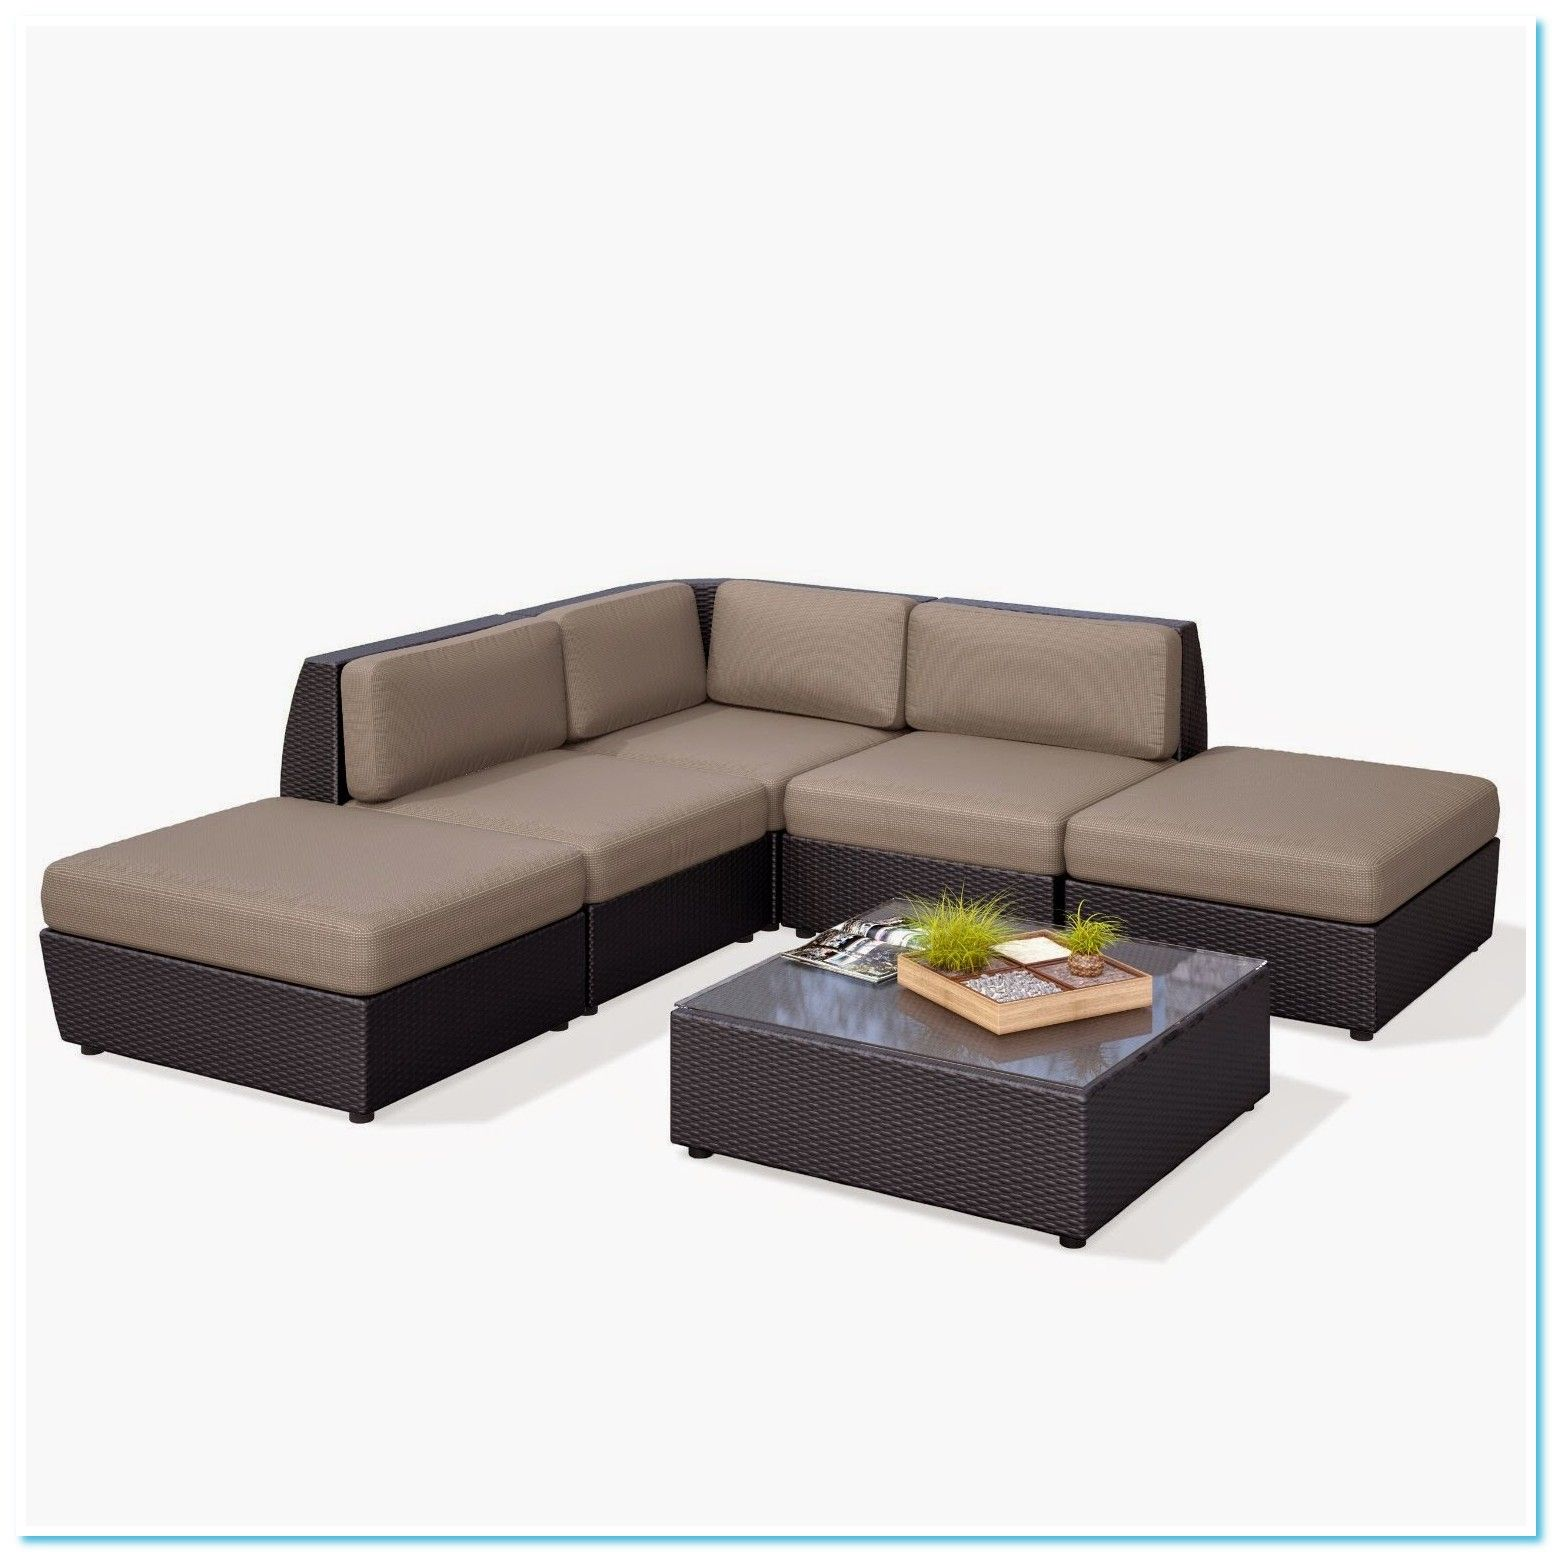 47 Reference Of Sofa Sectionals Round In 2020 Large Sectional Couch Round Sofa Sofa Couch